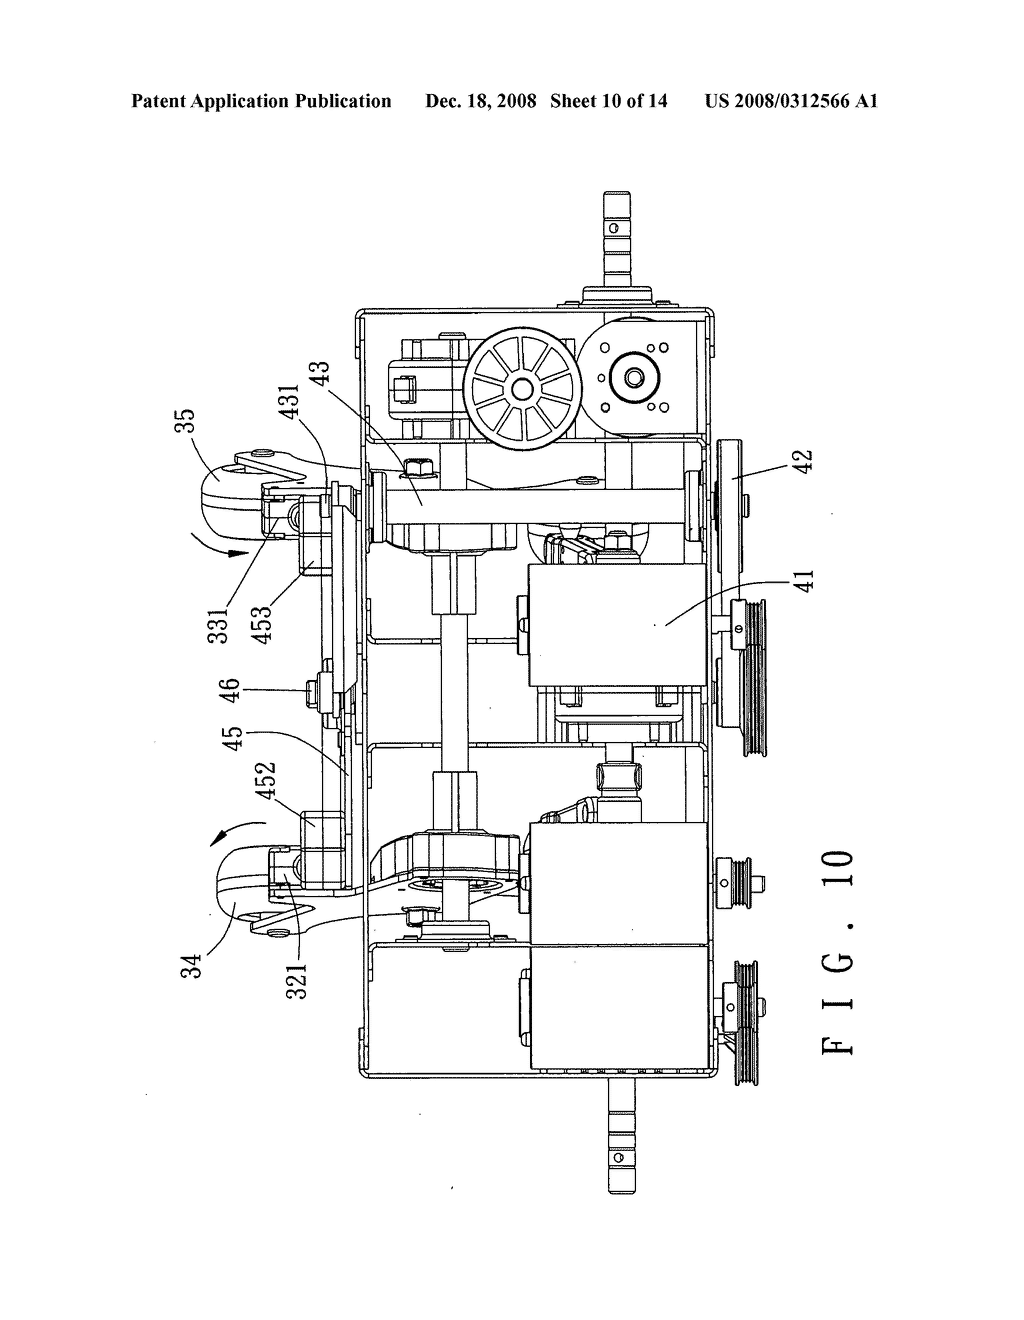 Tapping Mechanism For Use In A Massage Device Of Machine Nissan Skyline R33 Wiring Diagram Engine Schematic And Image 11